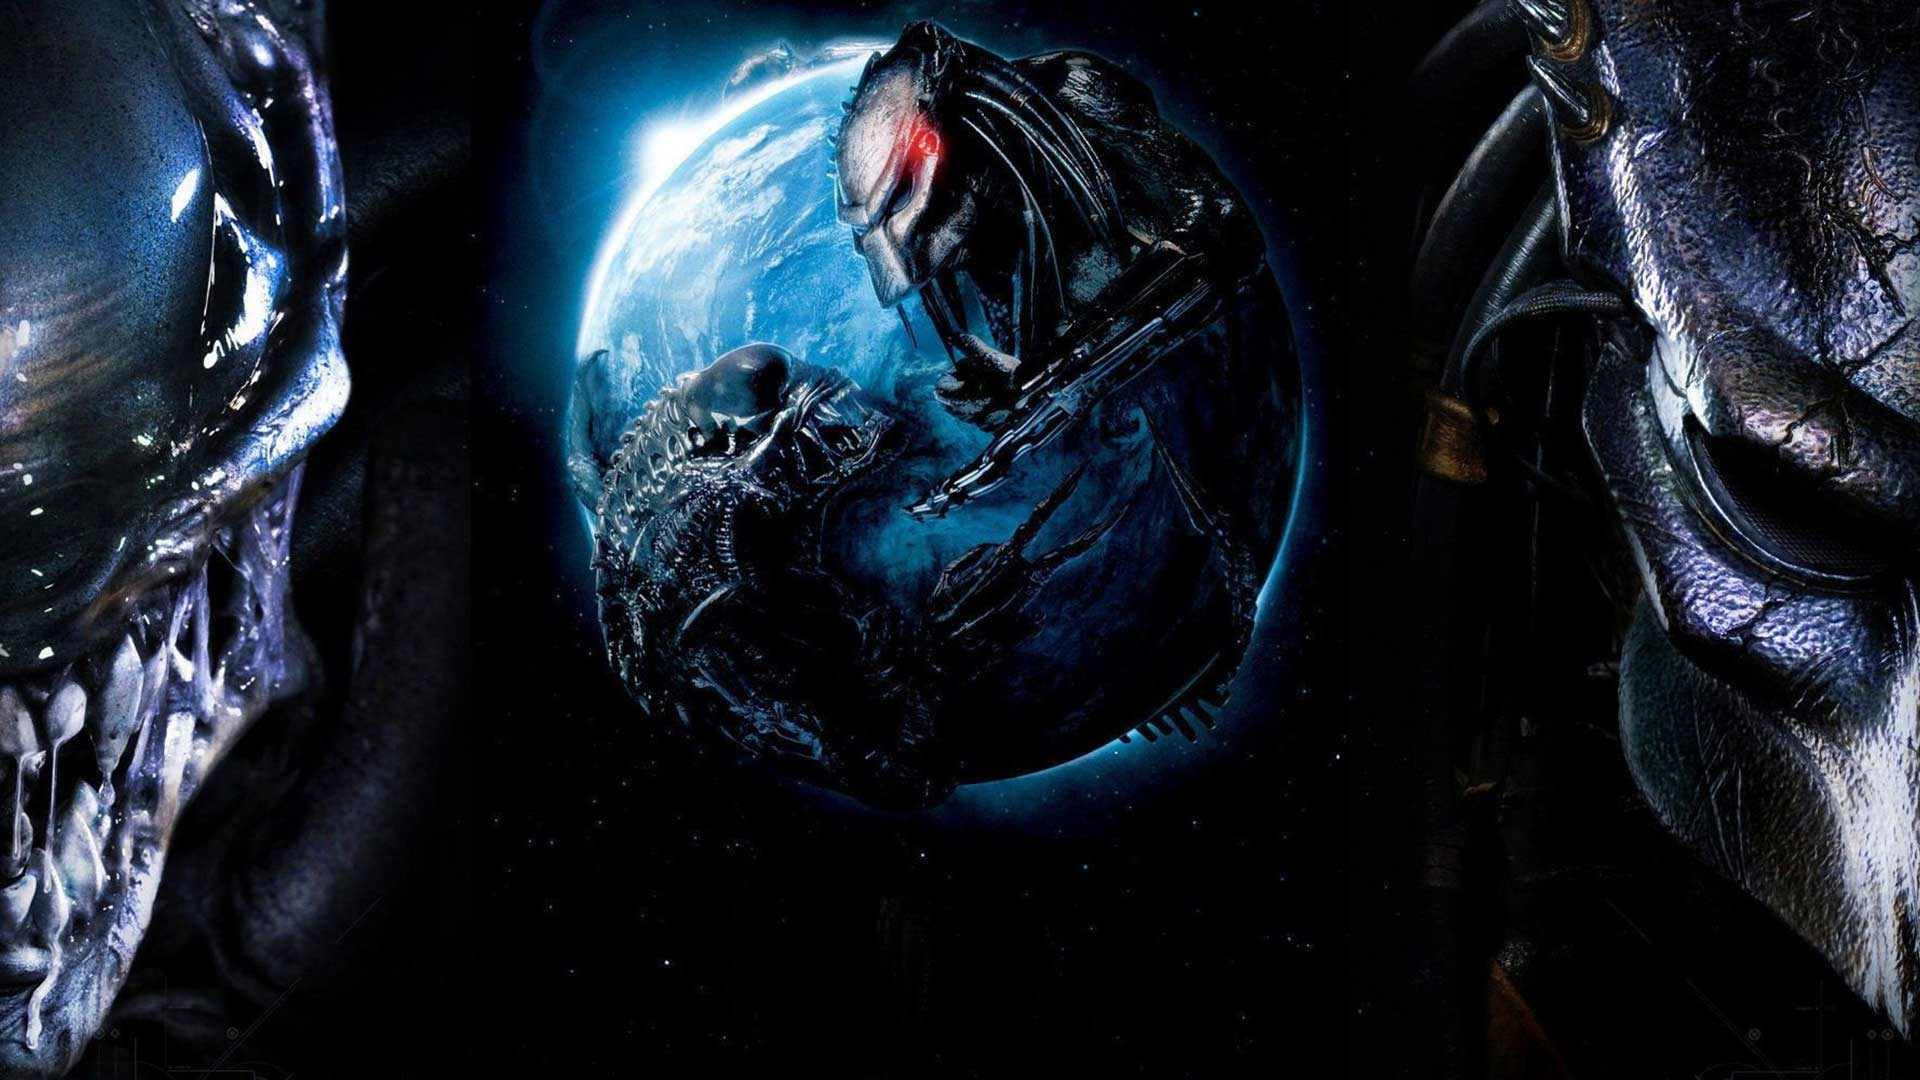 1920x1080 alien-vs-predator-movie-wallpaper-3.jpg ...